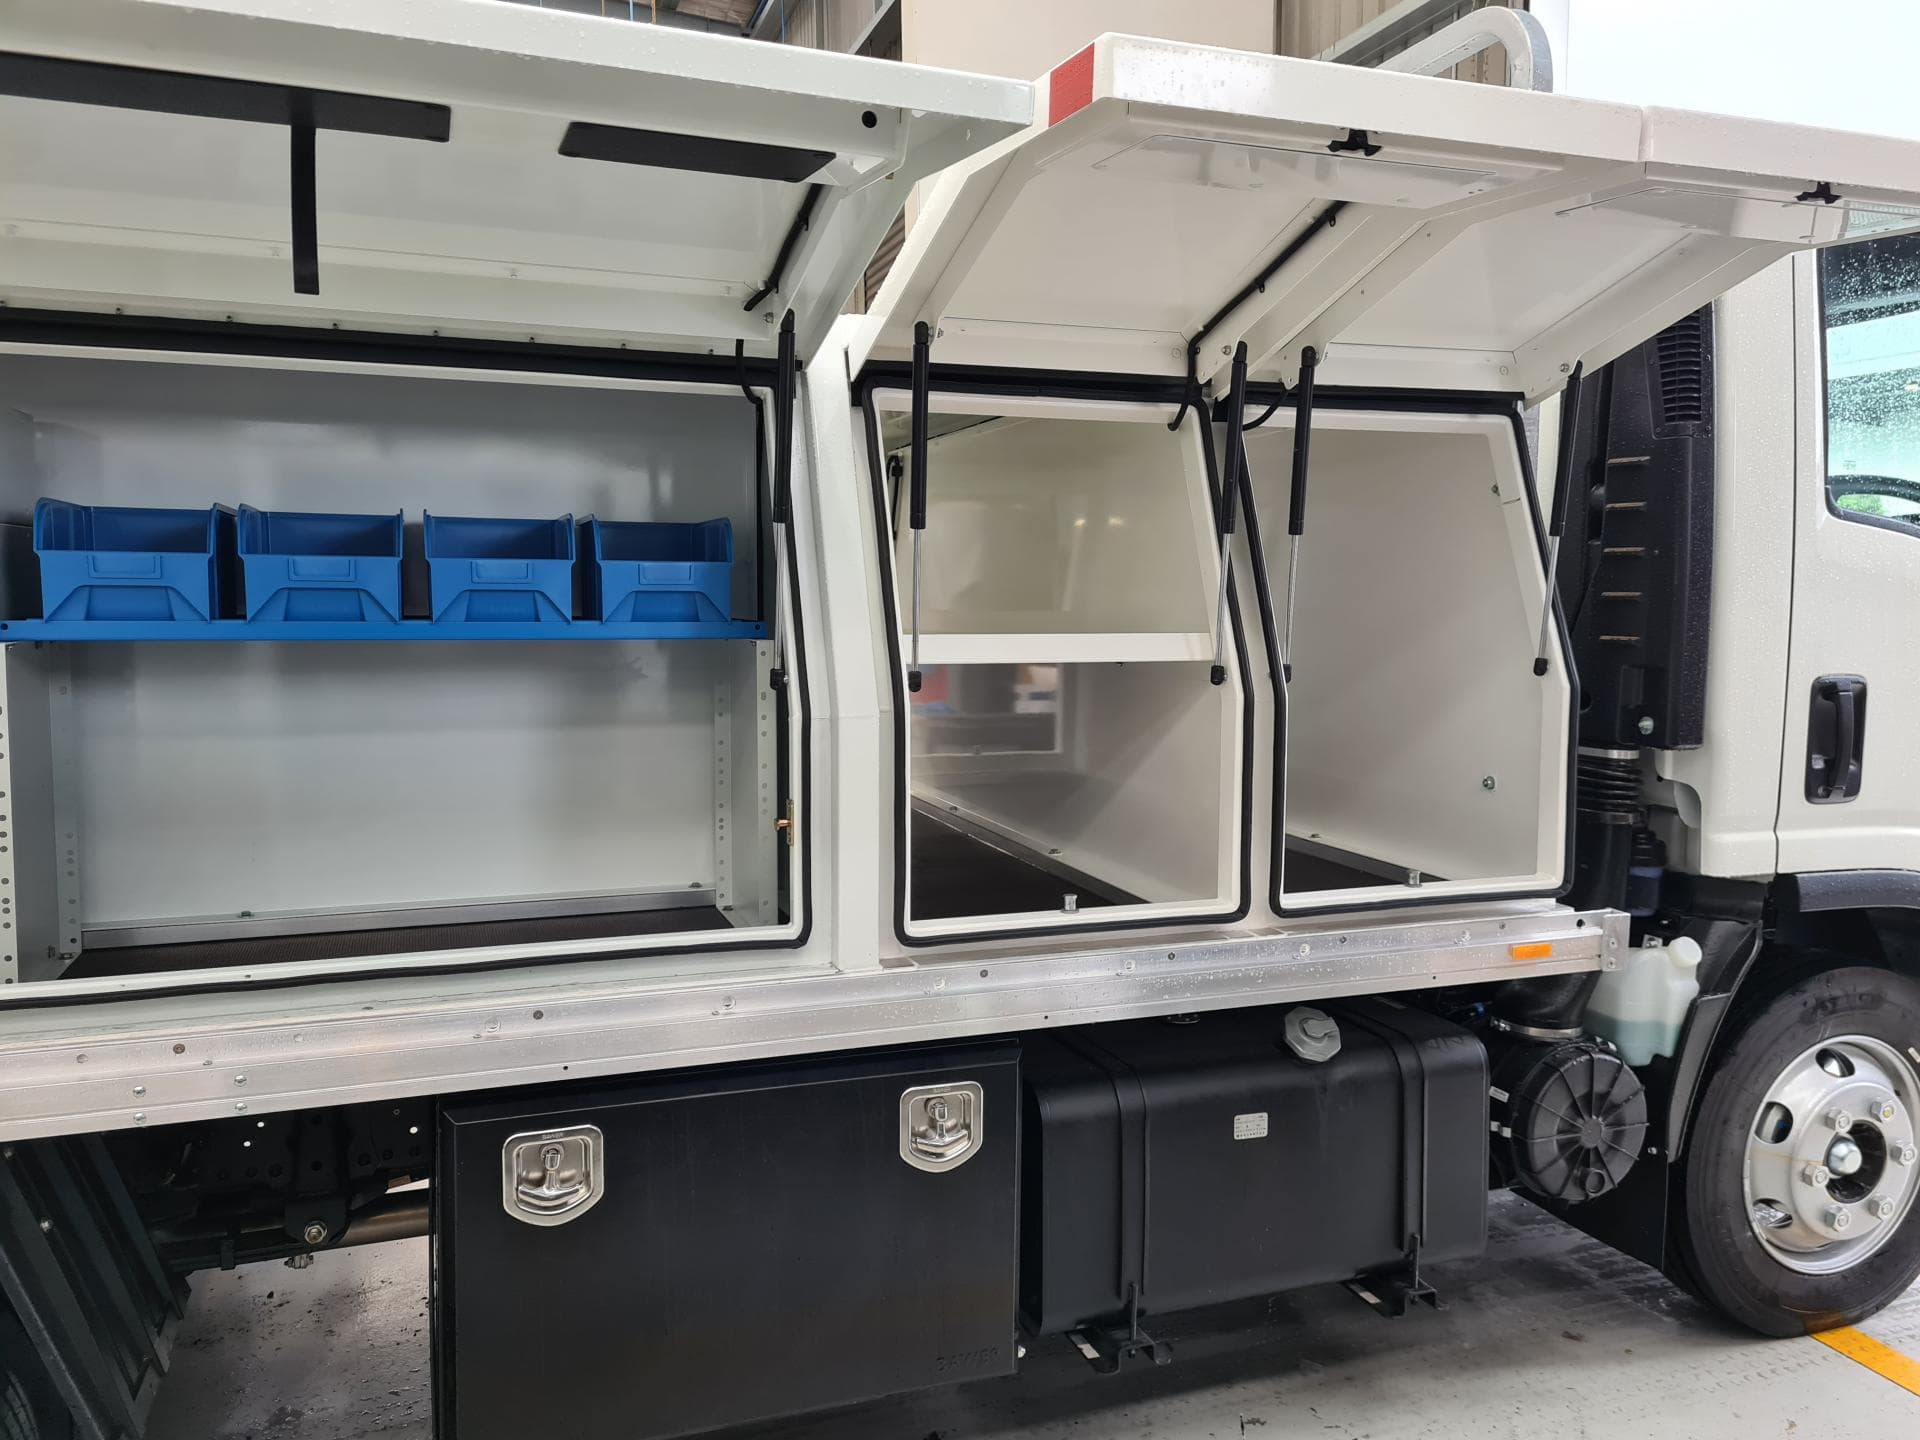 Commercial truck fitout with storage compartments